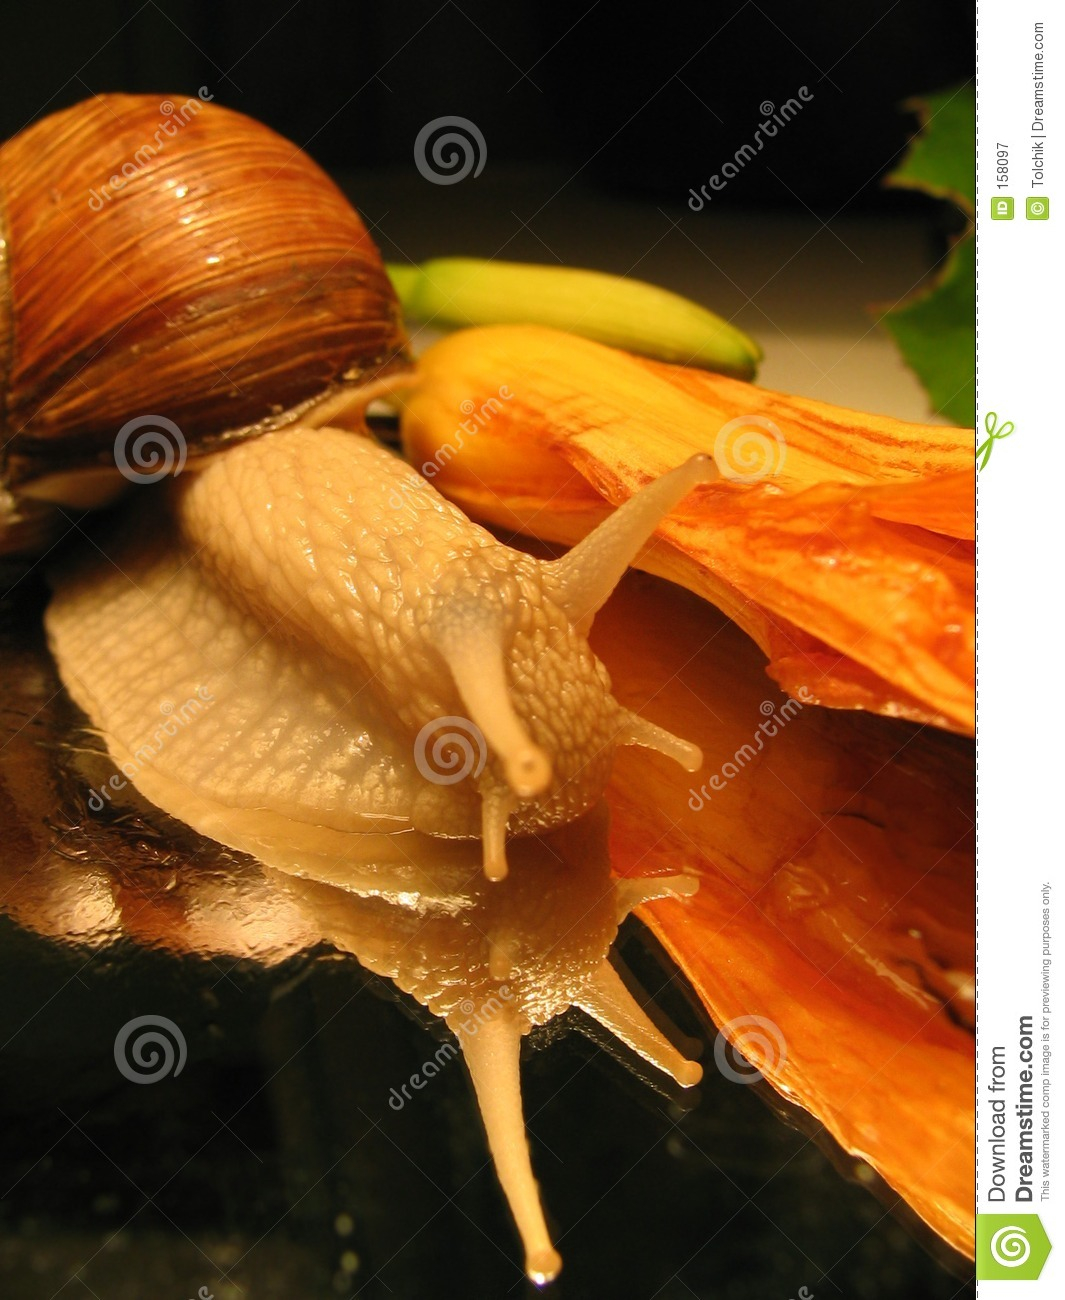 Still-life with a snail